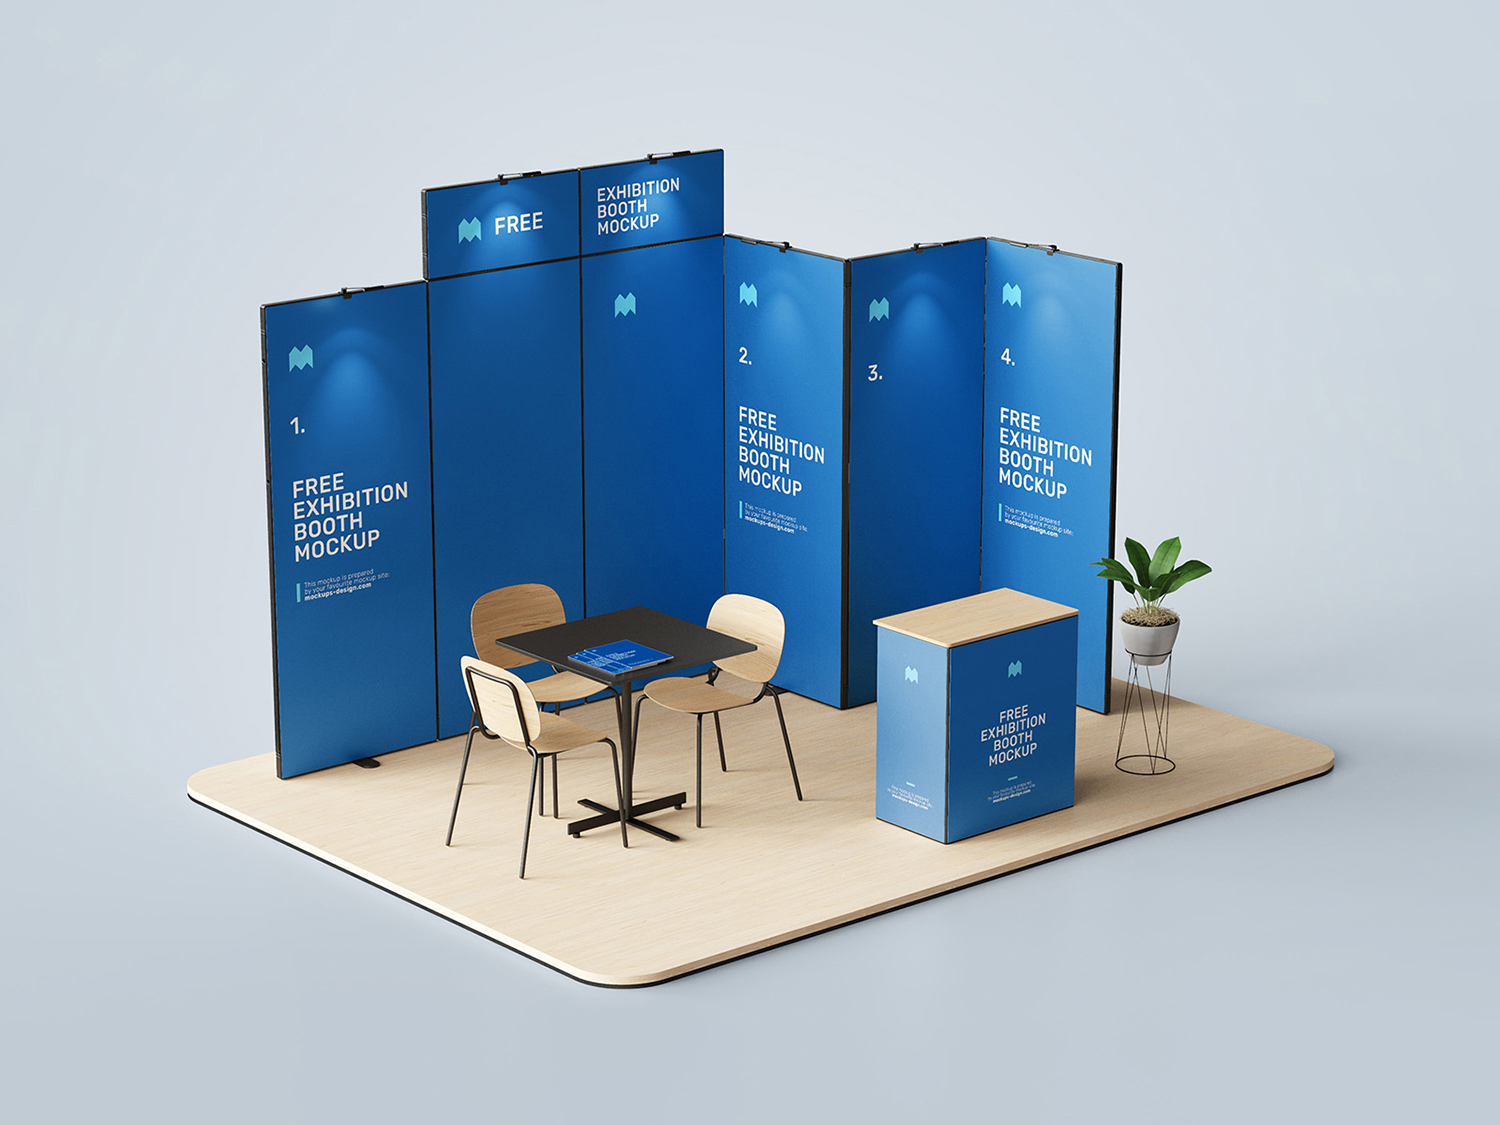 Exhibition Booth Free Mockup